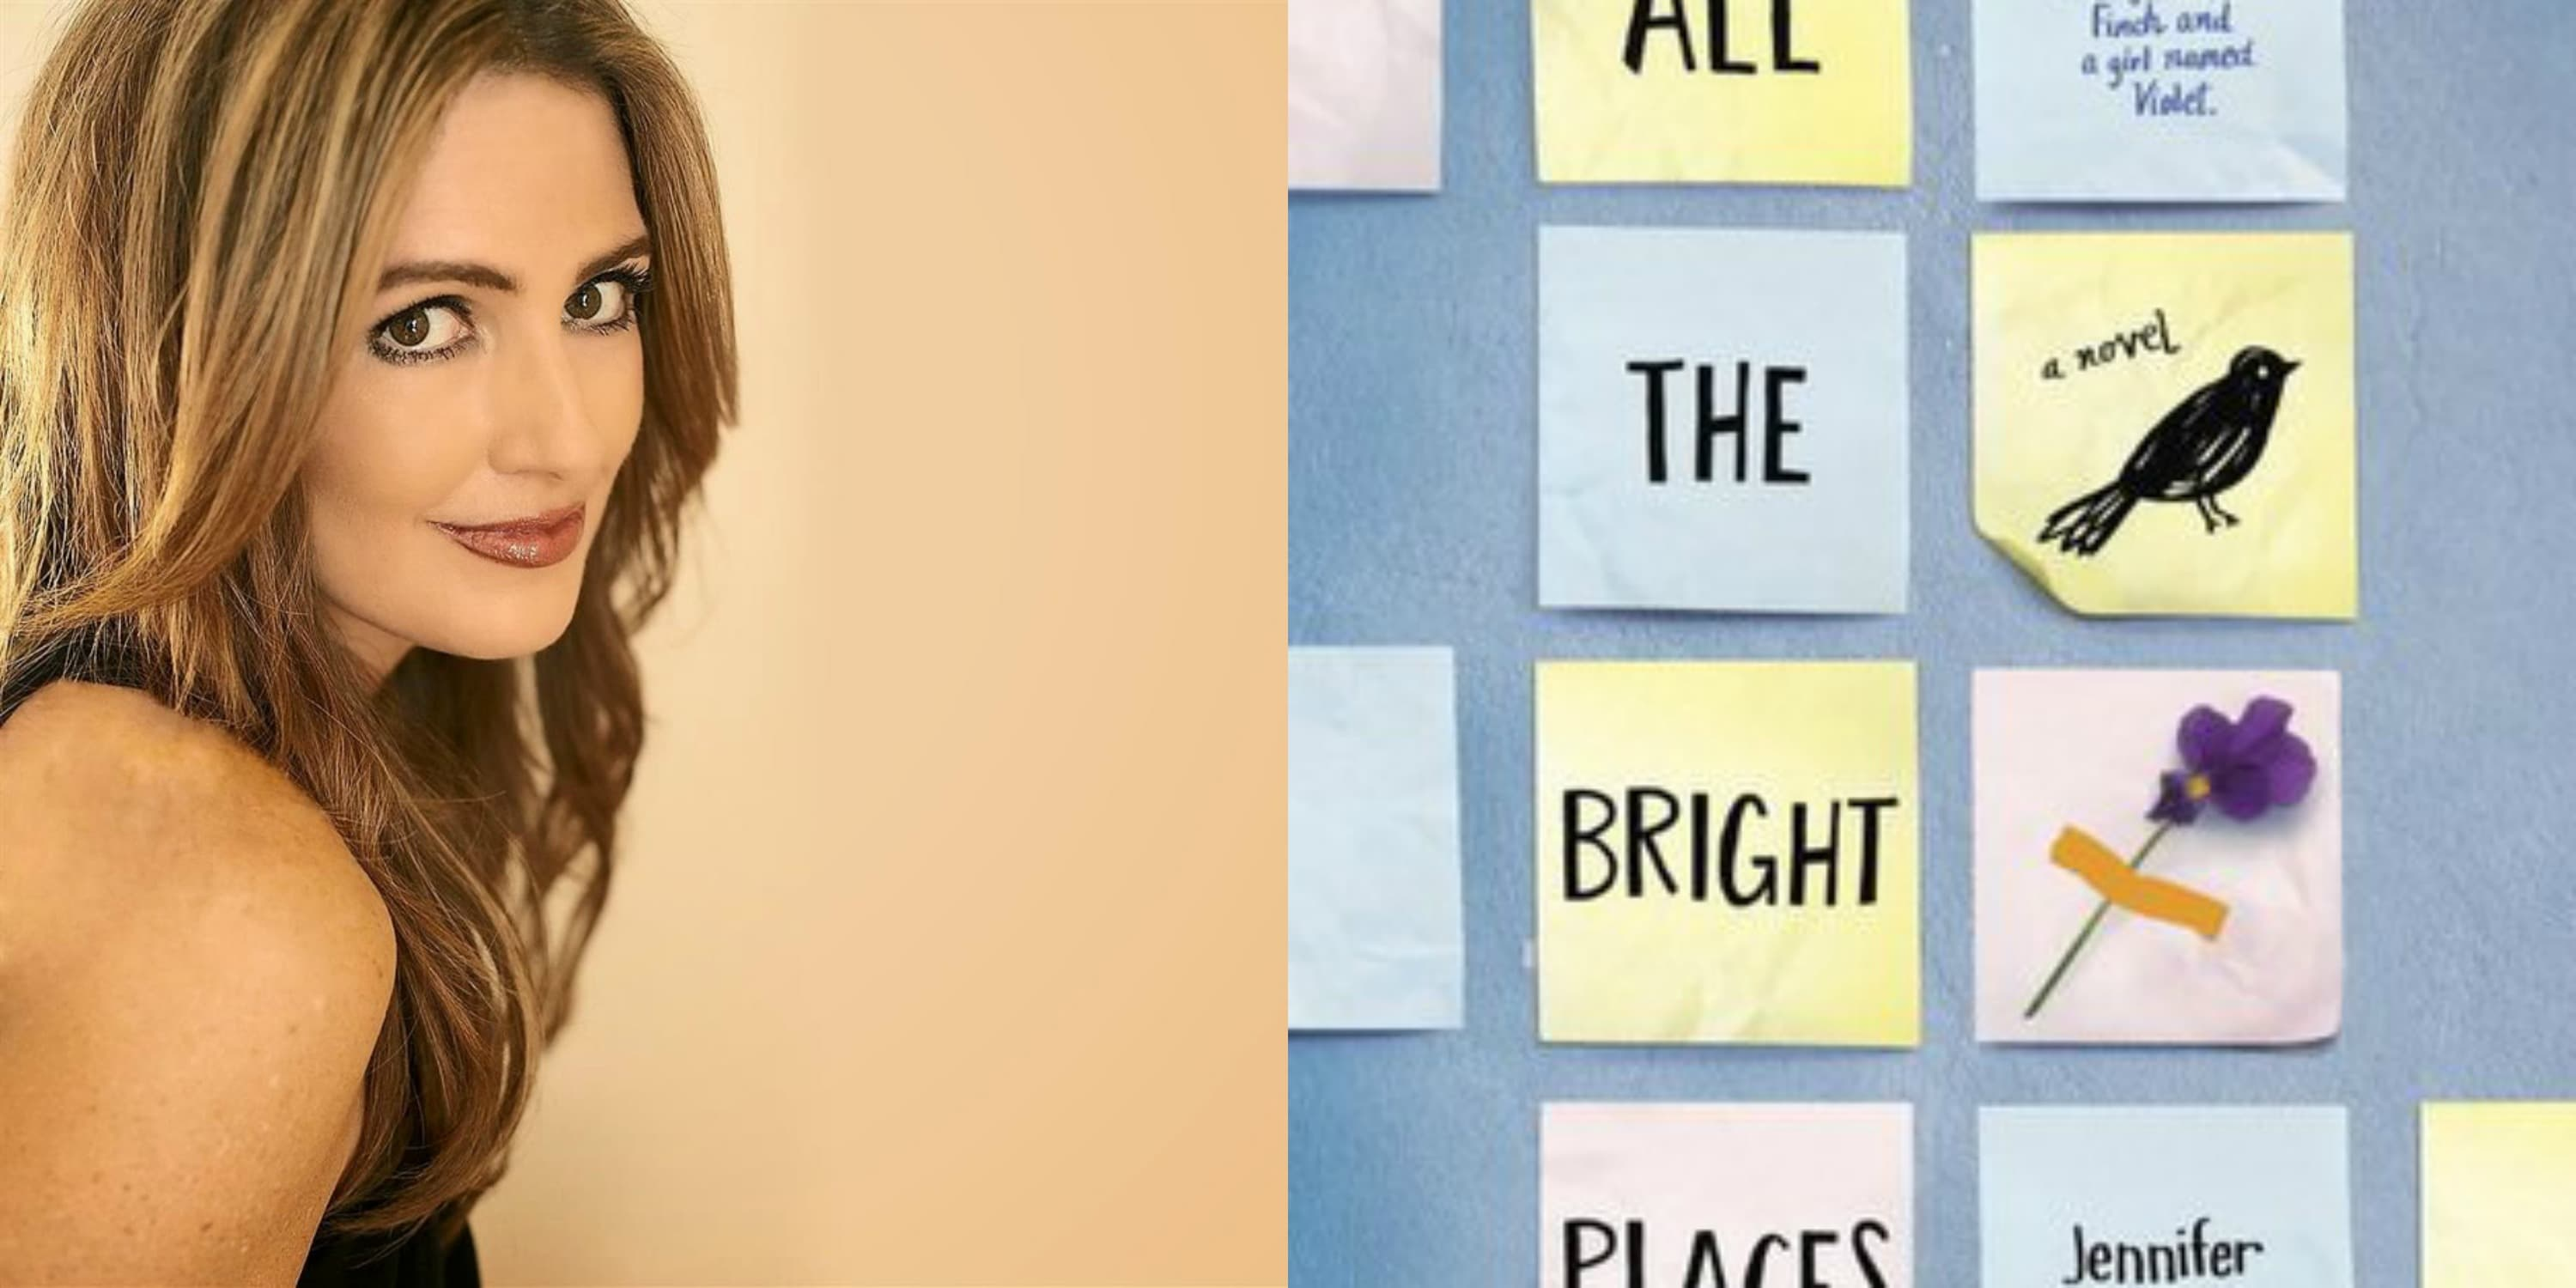 Sundays With Writers: All the Bright Places by Jennifer Niven